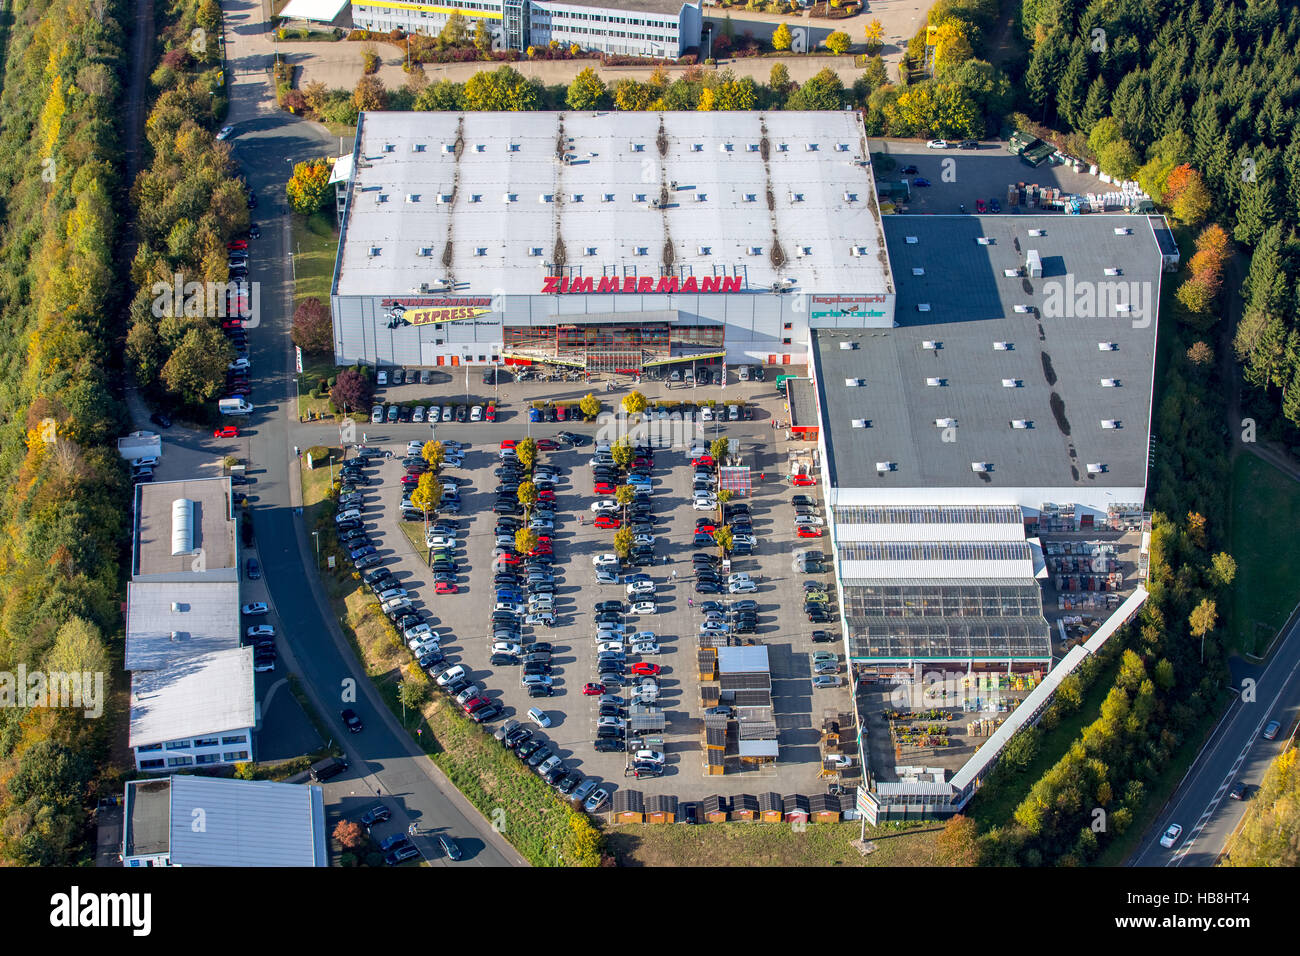 Aerial view, furniture Zimmermann GmbH and Co. KG, hagebaumarkt Freudenberg, commercial areas on the A45 motorway - Stock Image